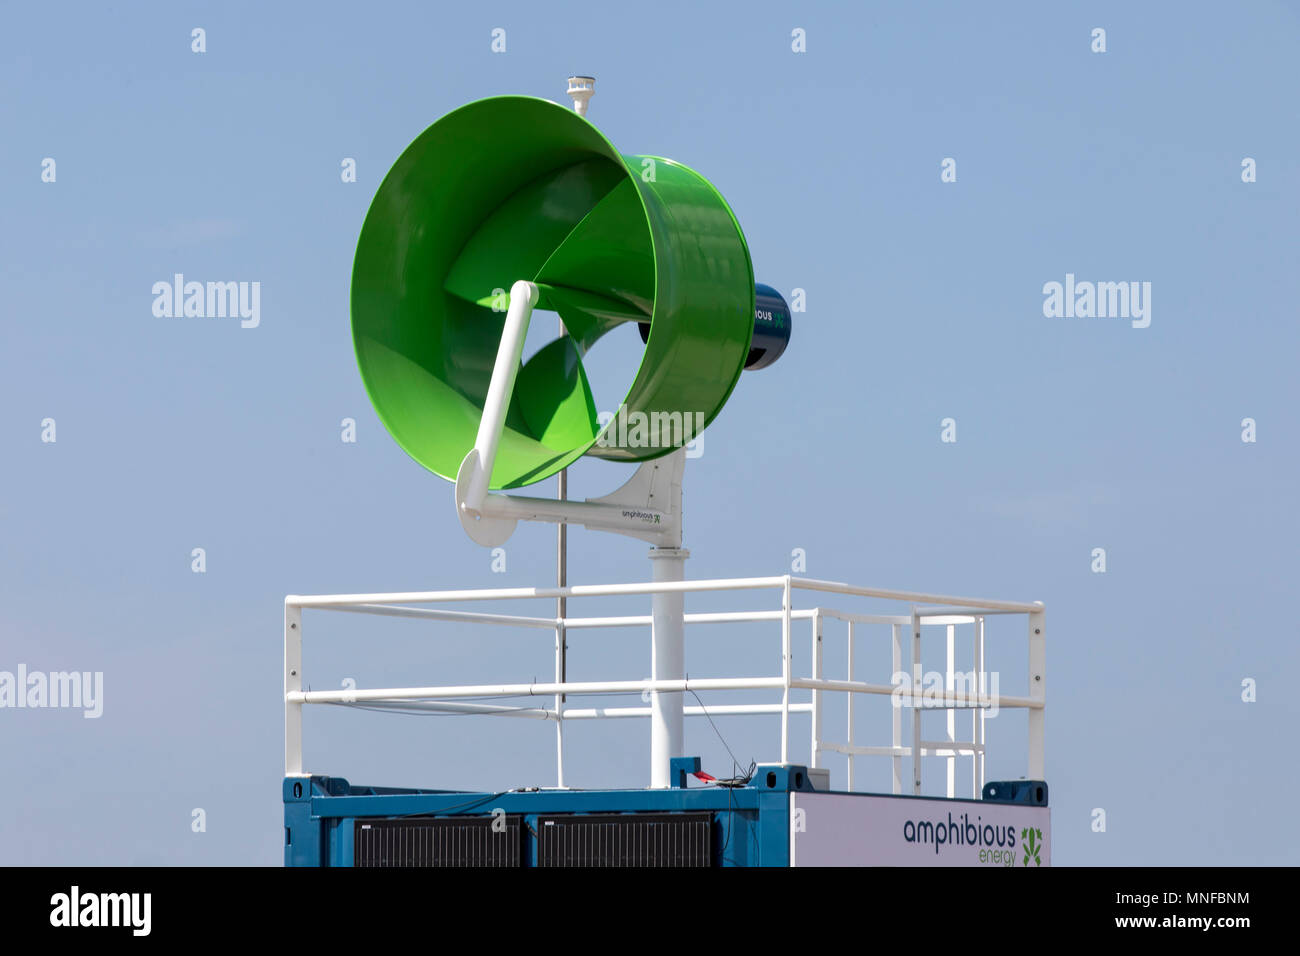 Mobile Energy Station Amphibious Energy, container that generates electricity on site with wind energy and solar panels, where it is needed, Port of R - Stock Image